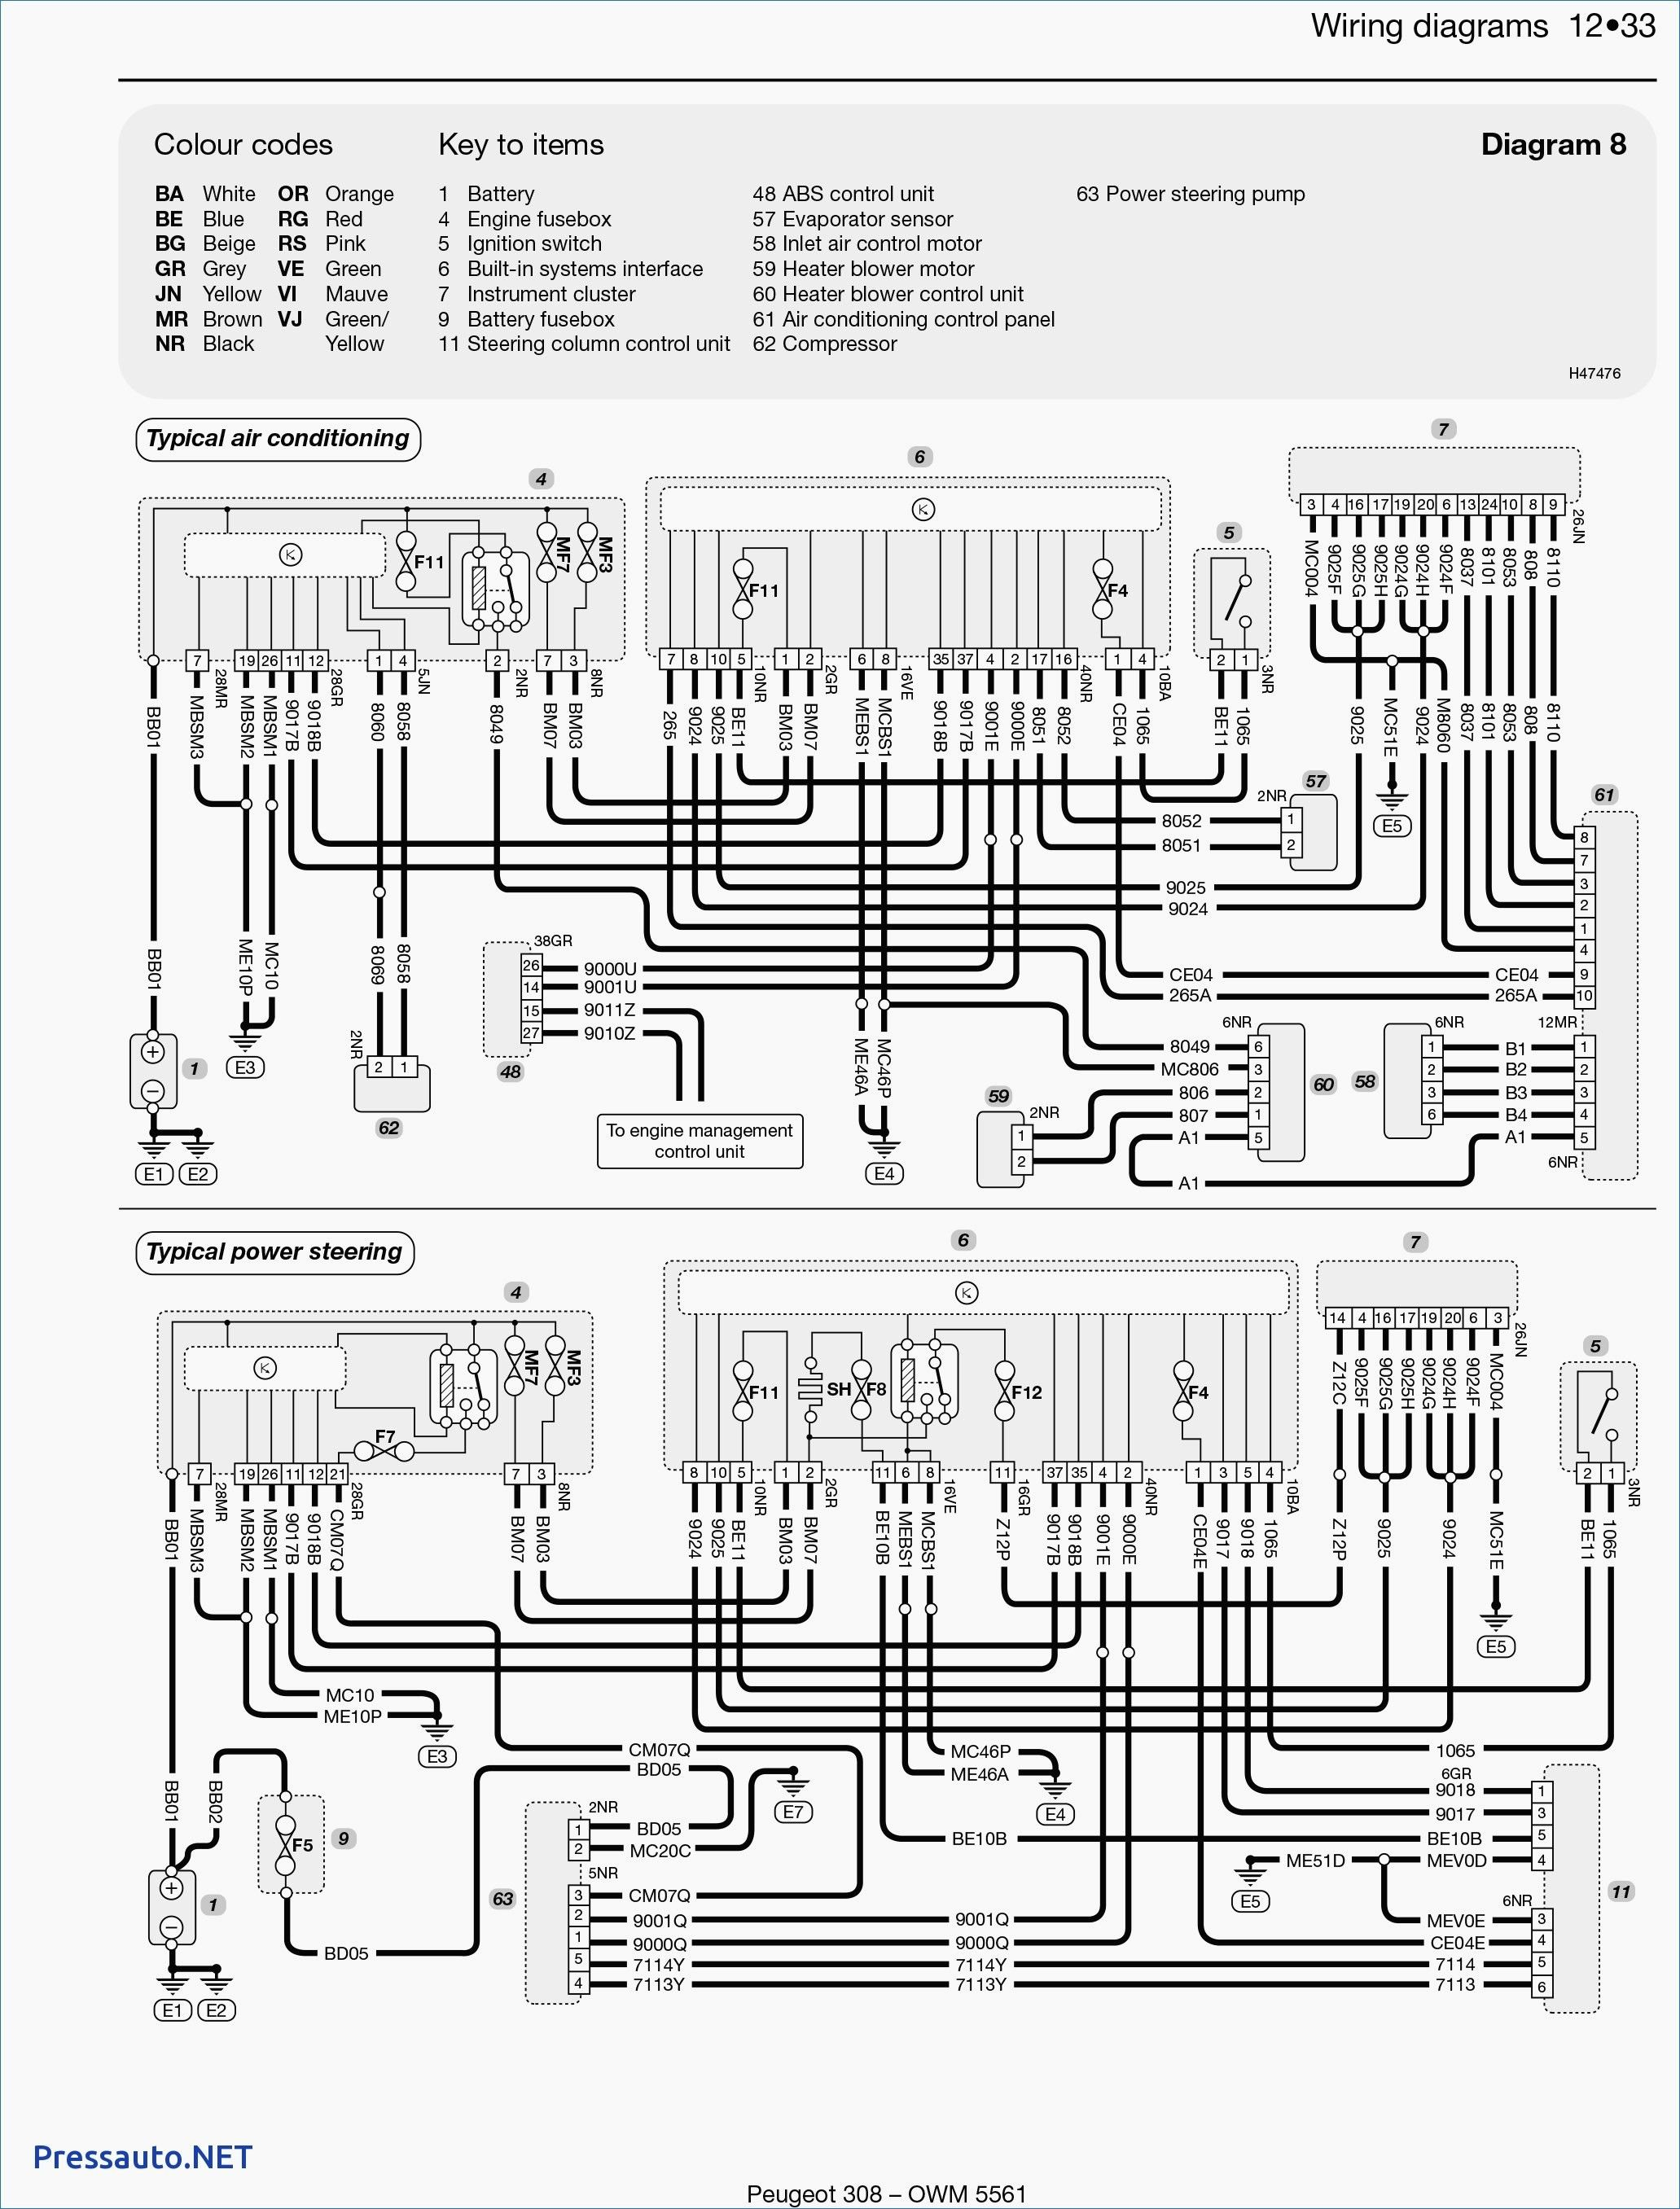 Wiring Diagram For Peugeot 206 Stereo Best Of Fortable In